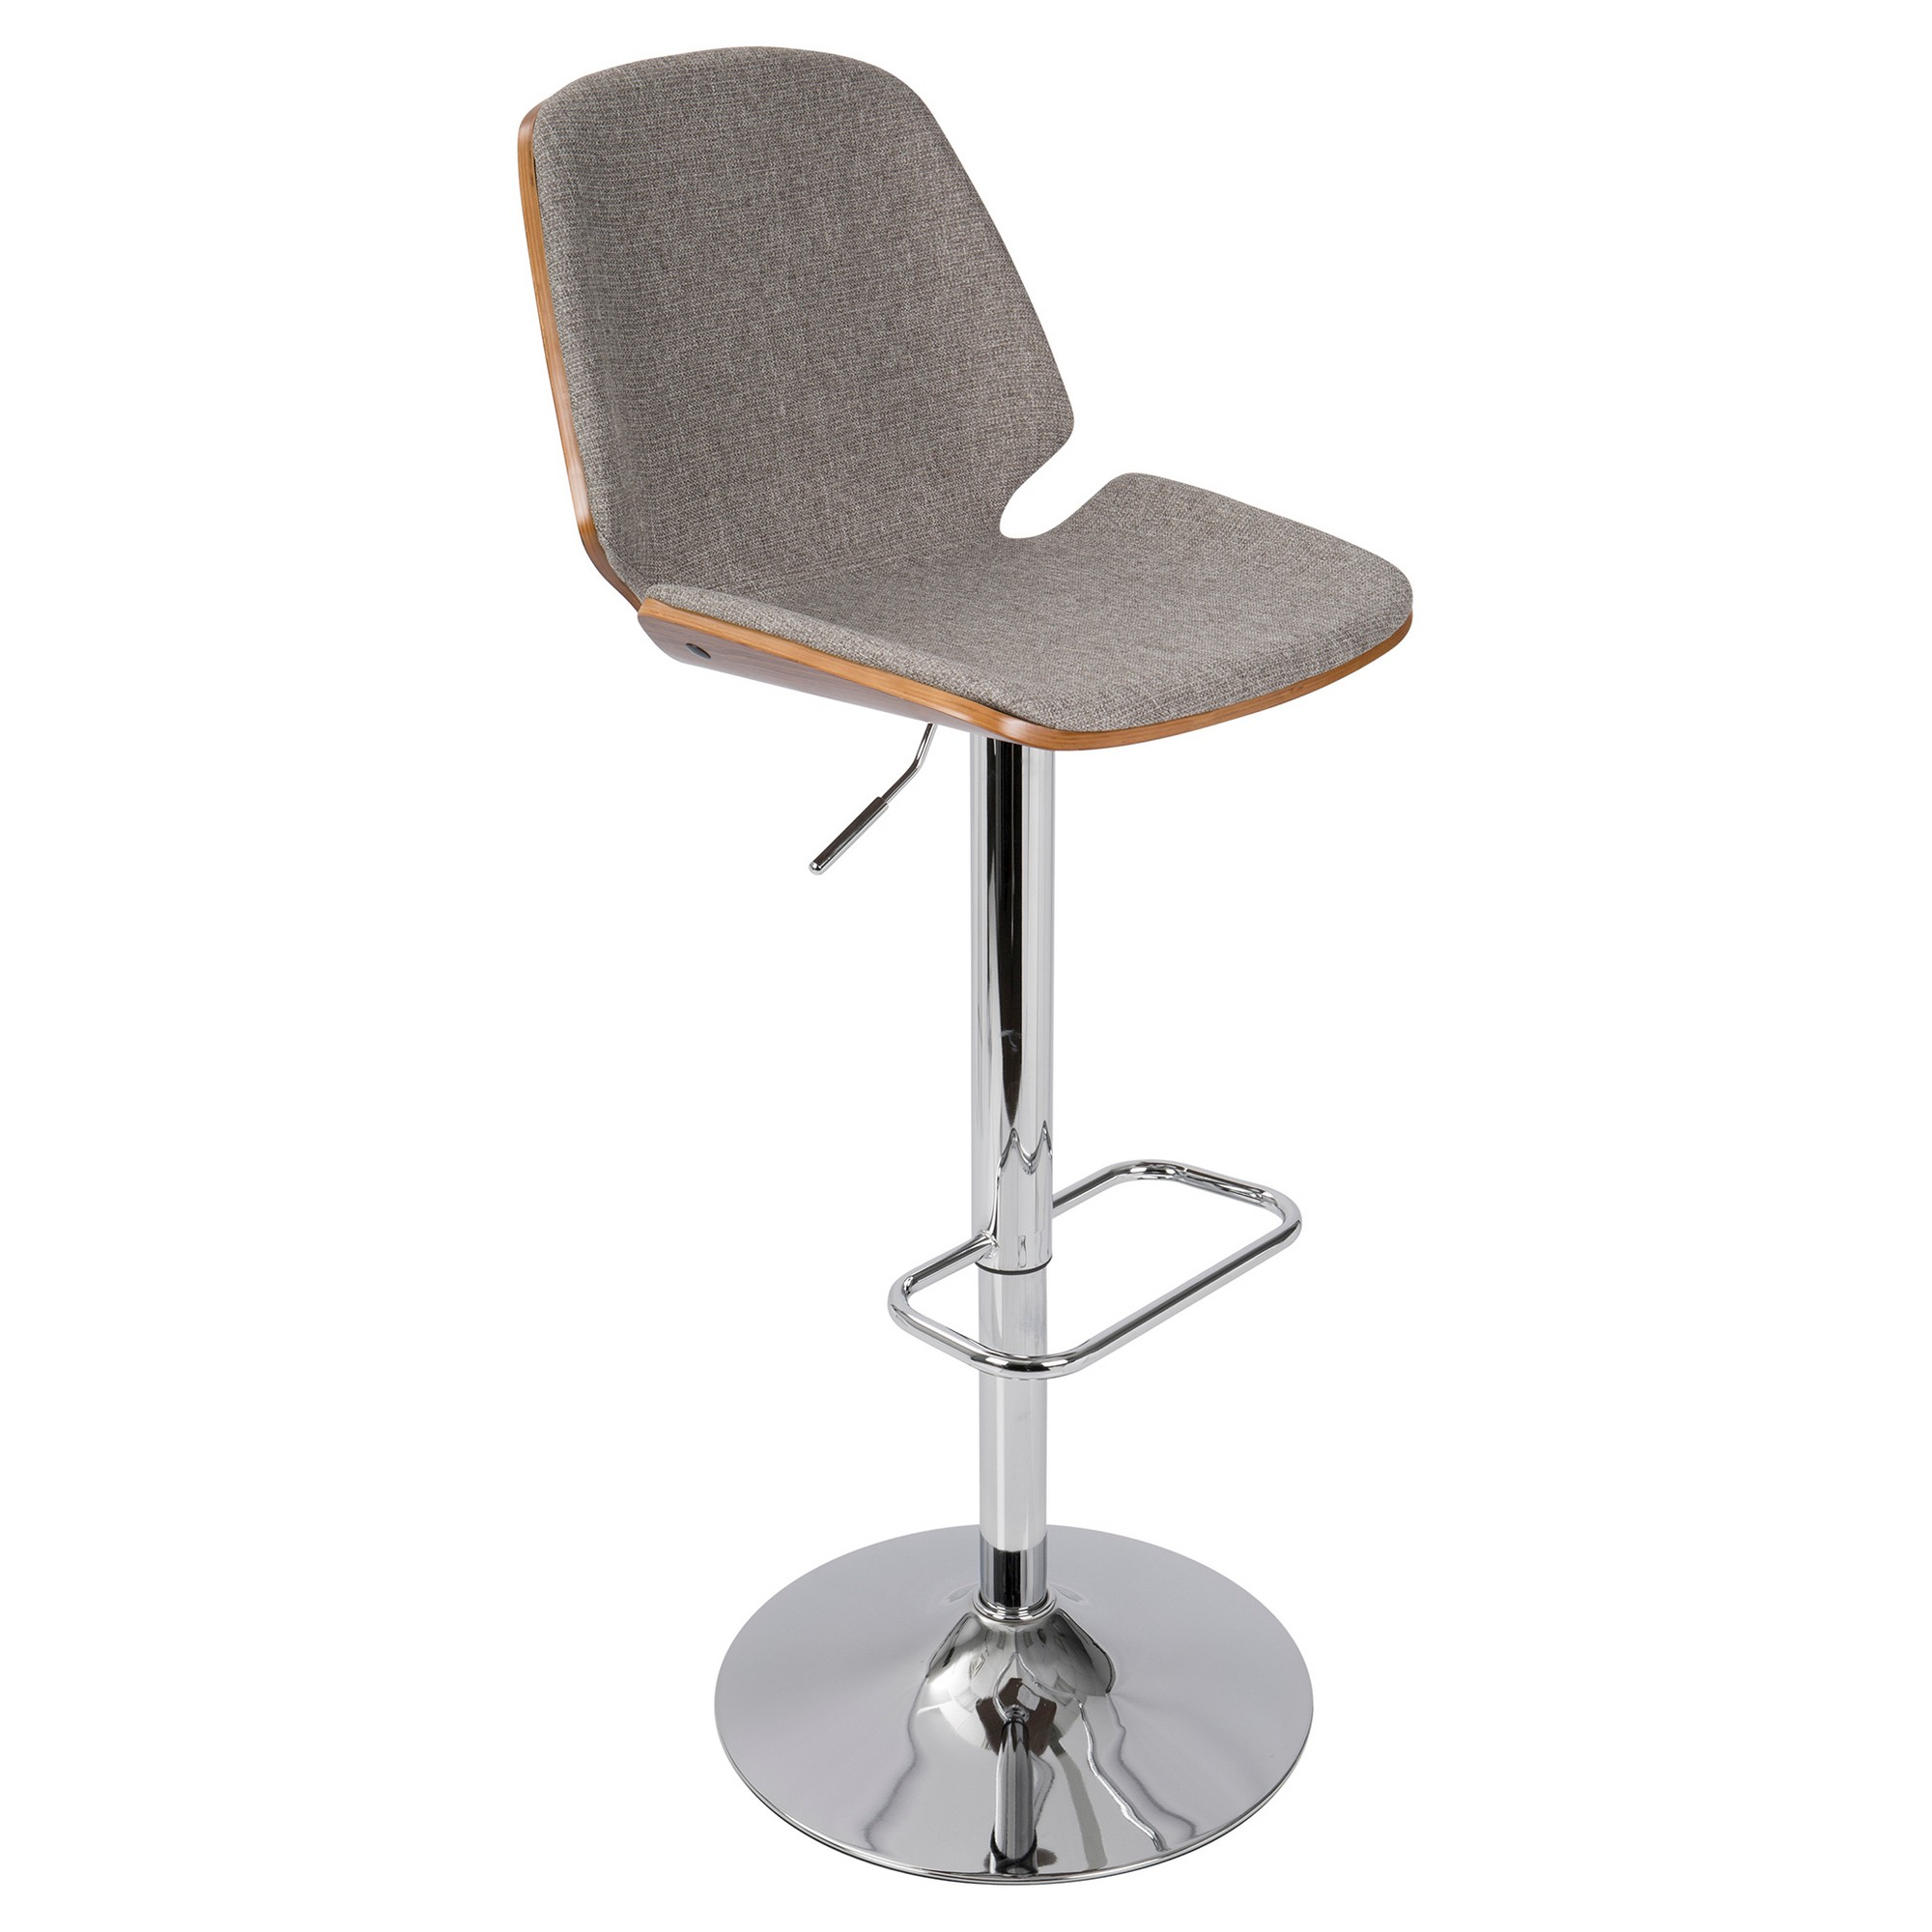 Tremendous Serena Mid Century Modern Adjustable Barstool Gray Forskolin Free Trial Chair Design Images Forskolin Free Trialorg